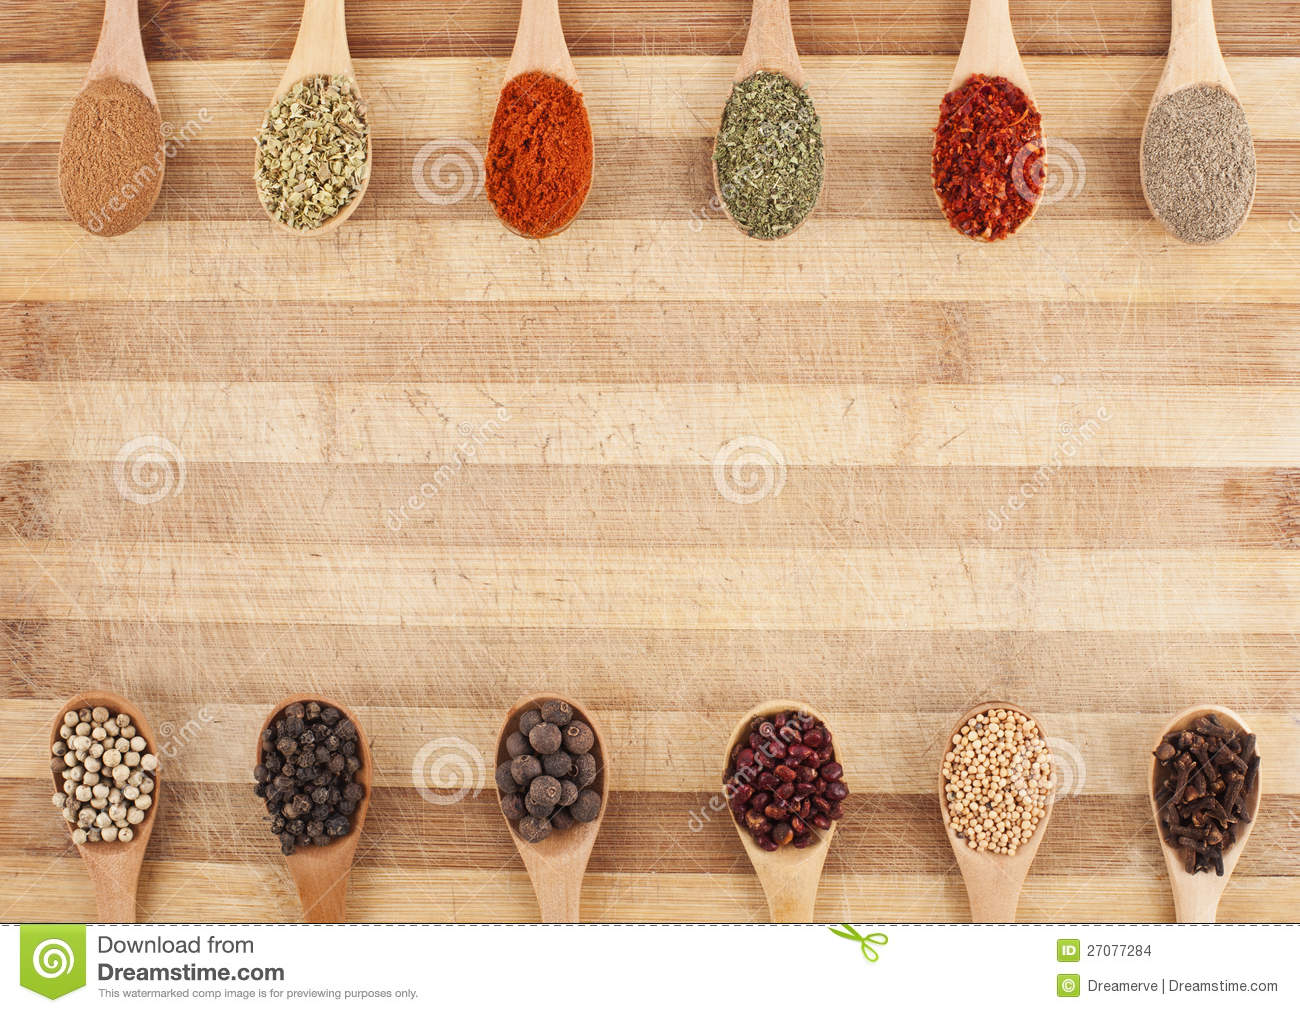 How to Start a Seasoning Business